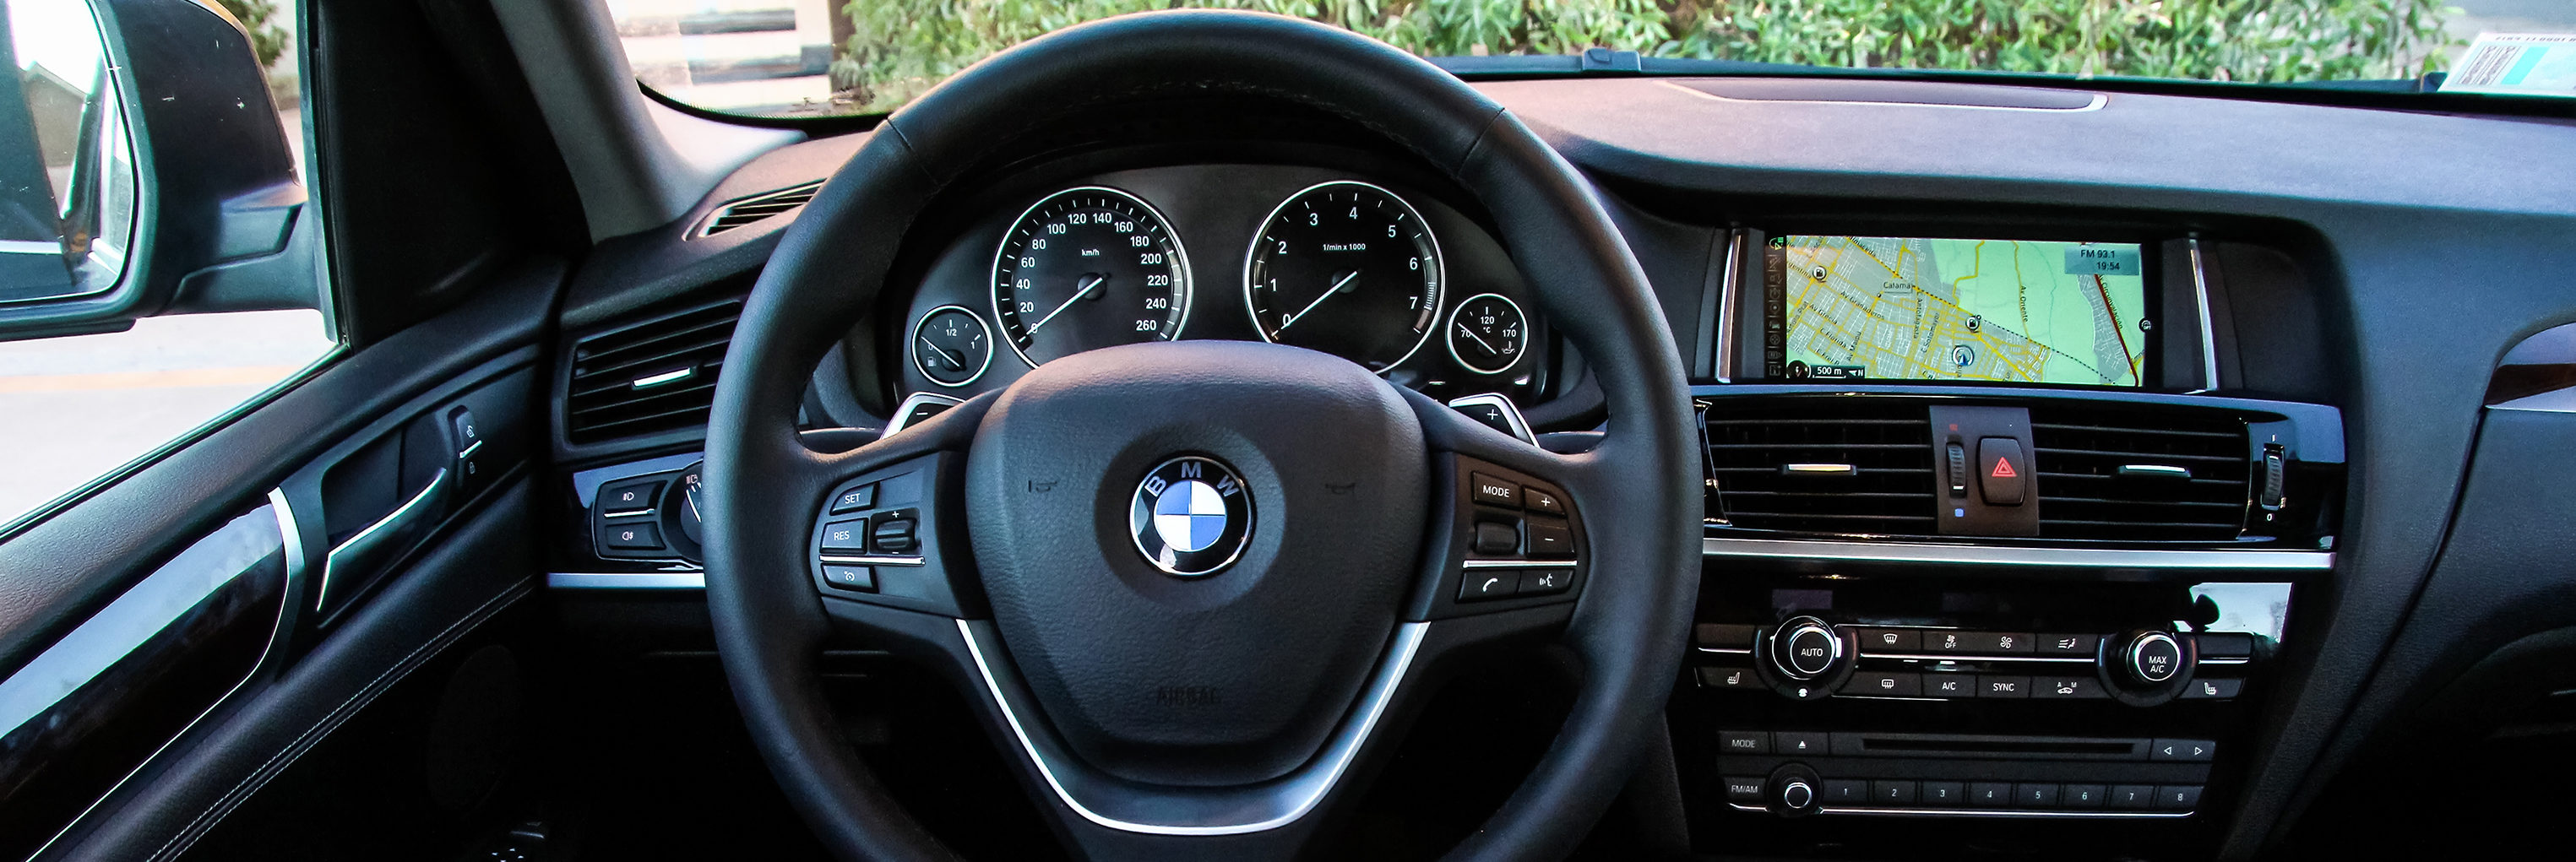 BMW F26 X4 steering wheel and dash